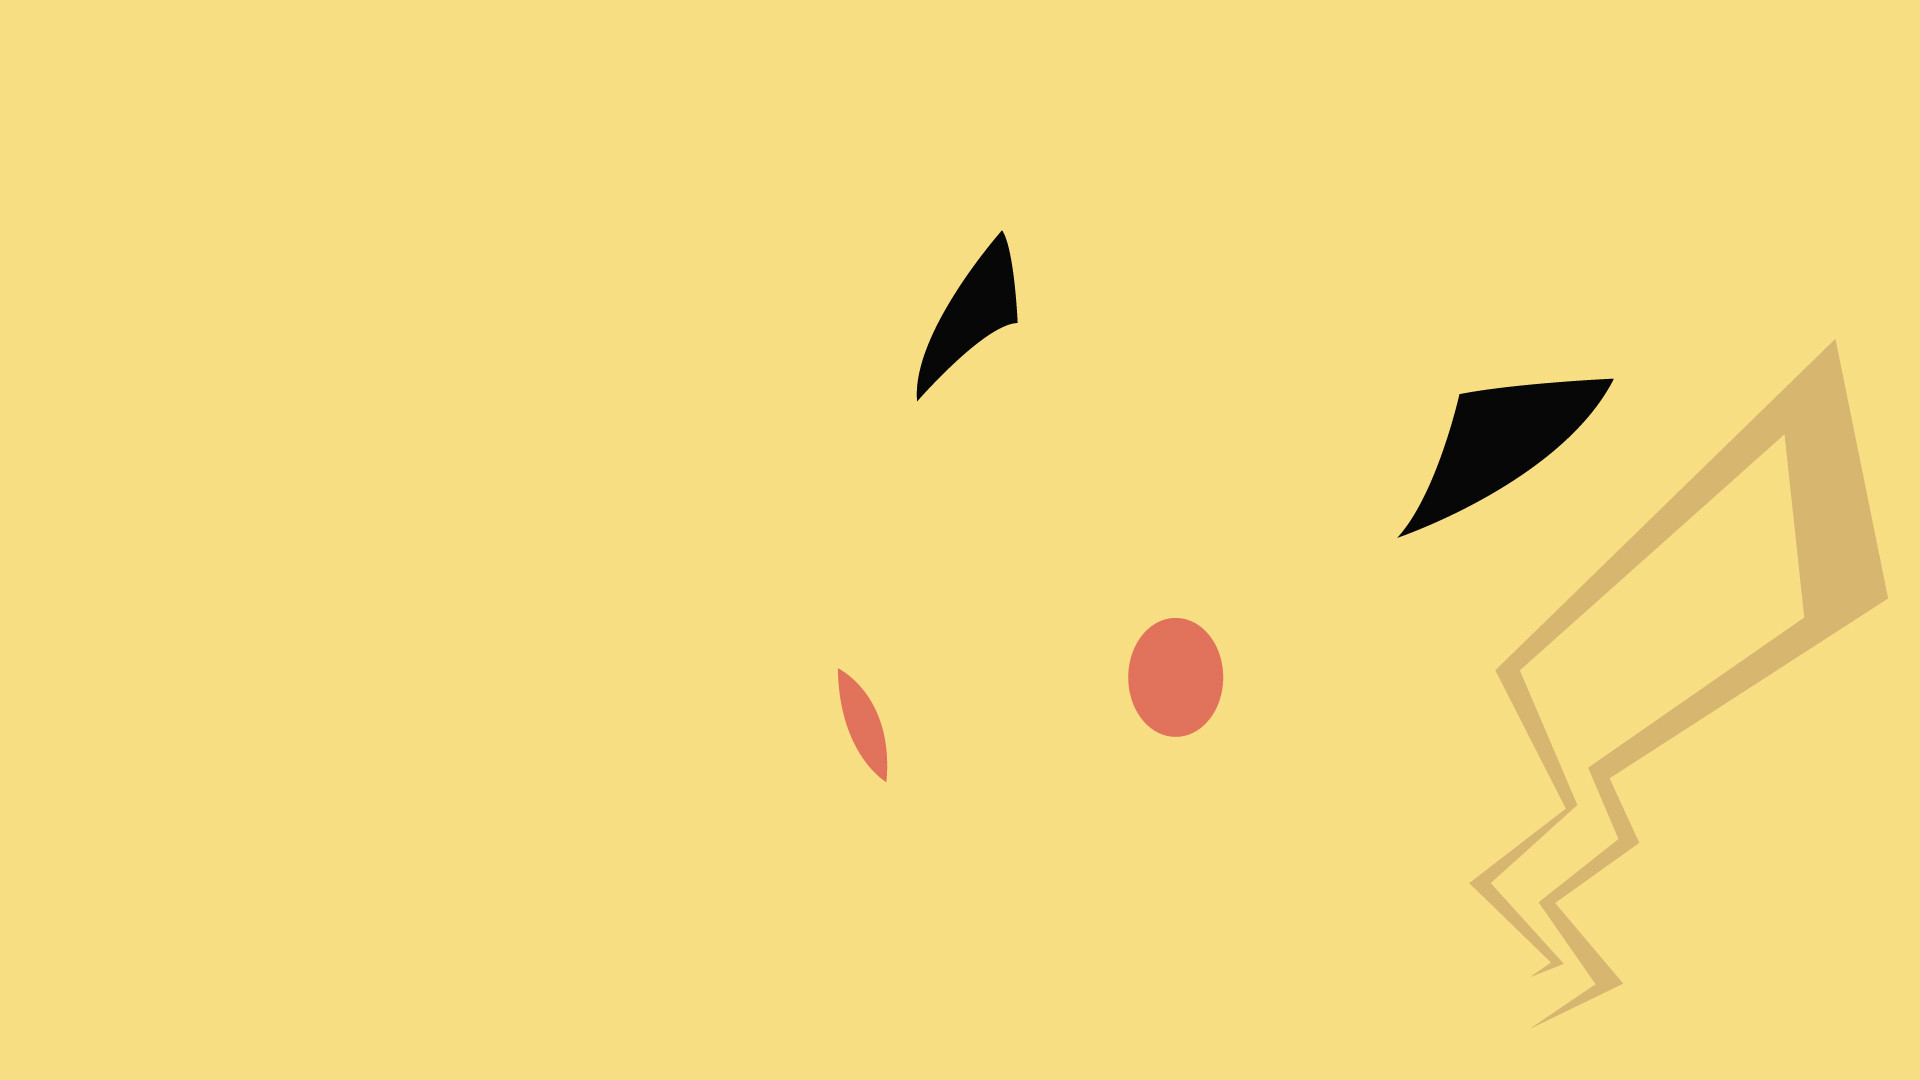 1920x1080 Awesome minimalist Pikachu wallpaper. There is a whole collection of them  at the linked site